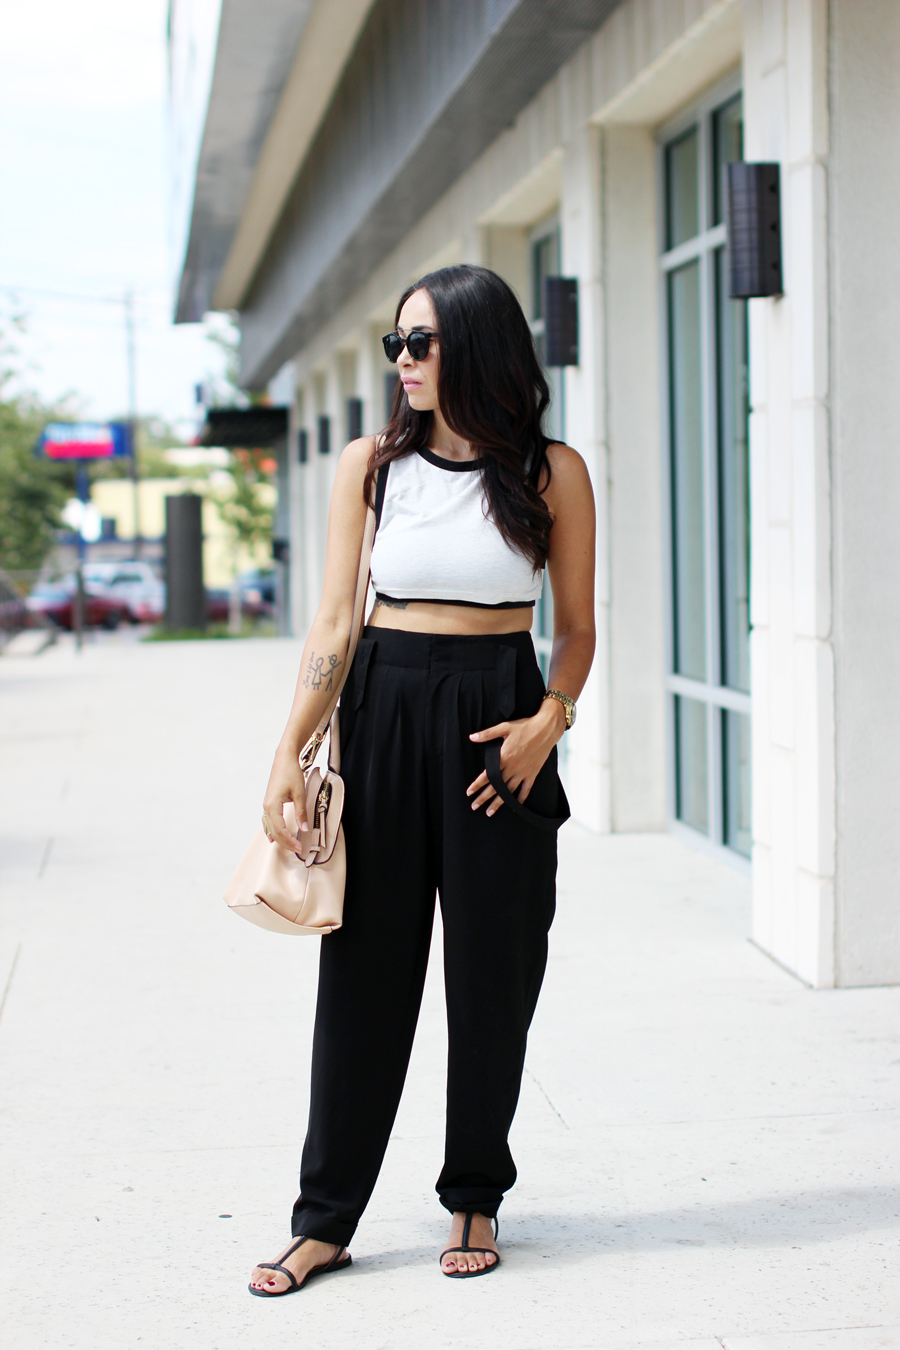 FTT-OVERALL-TROUSER-PANT-CROP-TOP-BLUSH-BAG-10